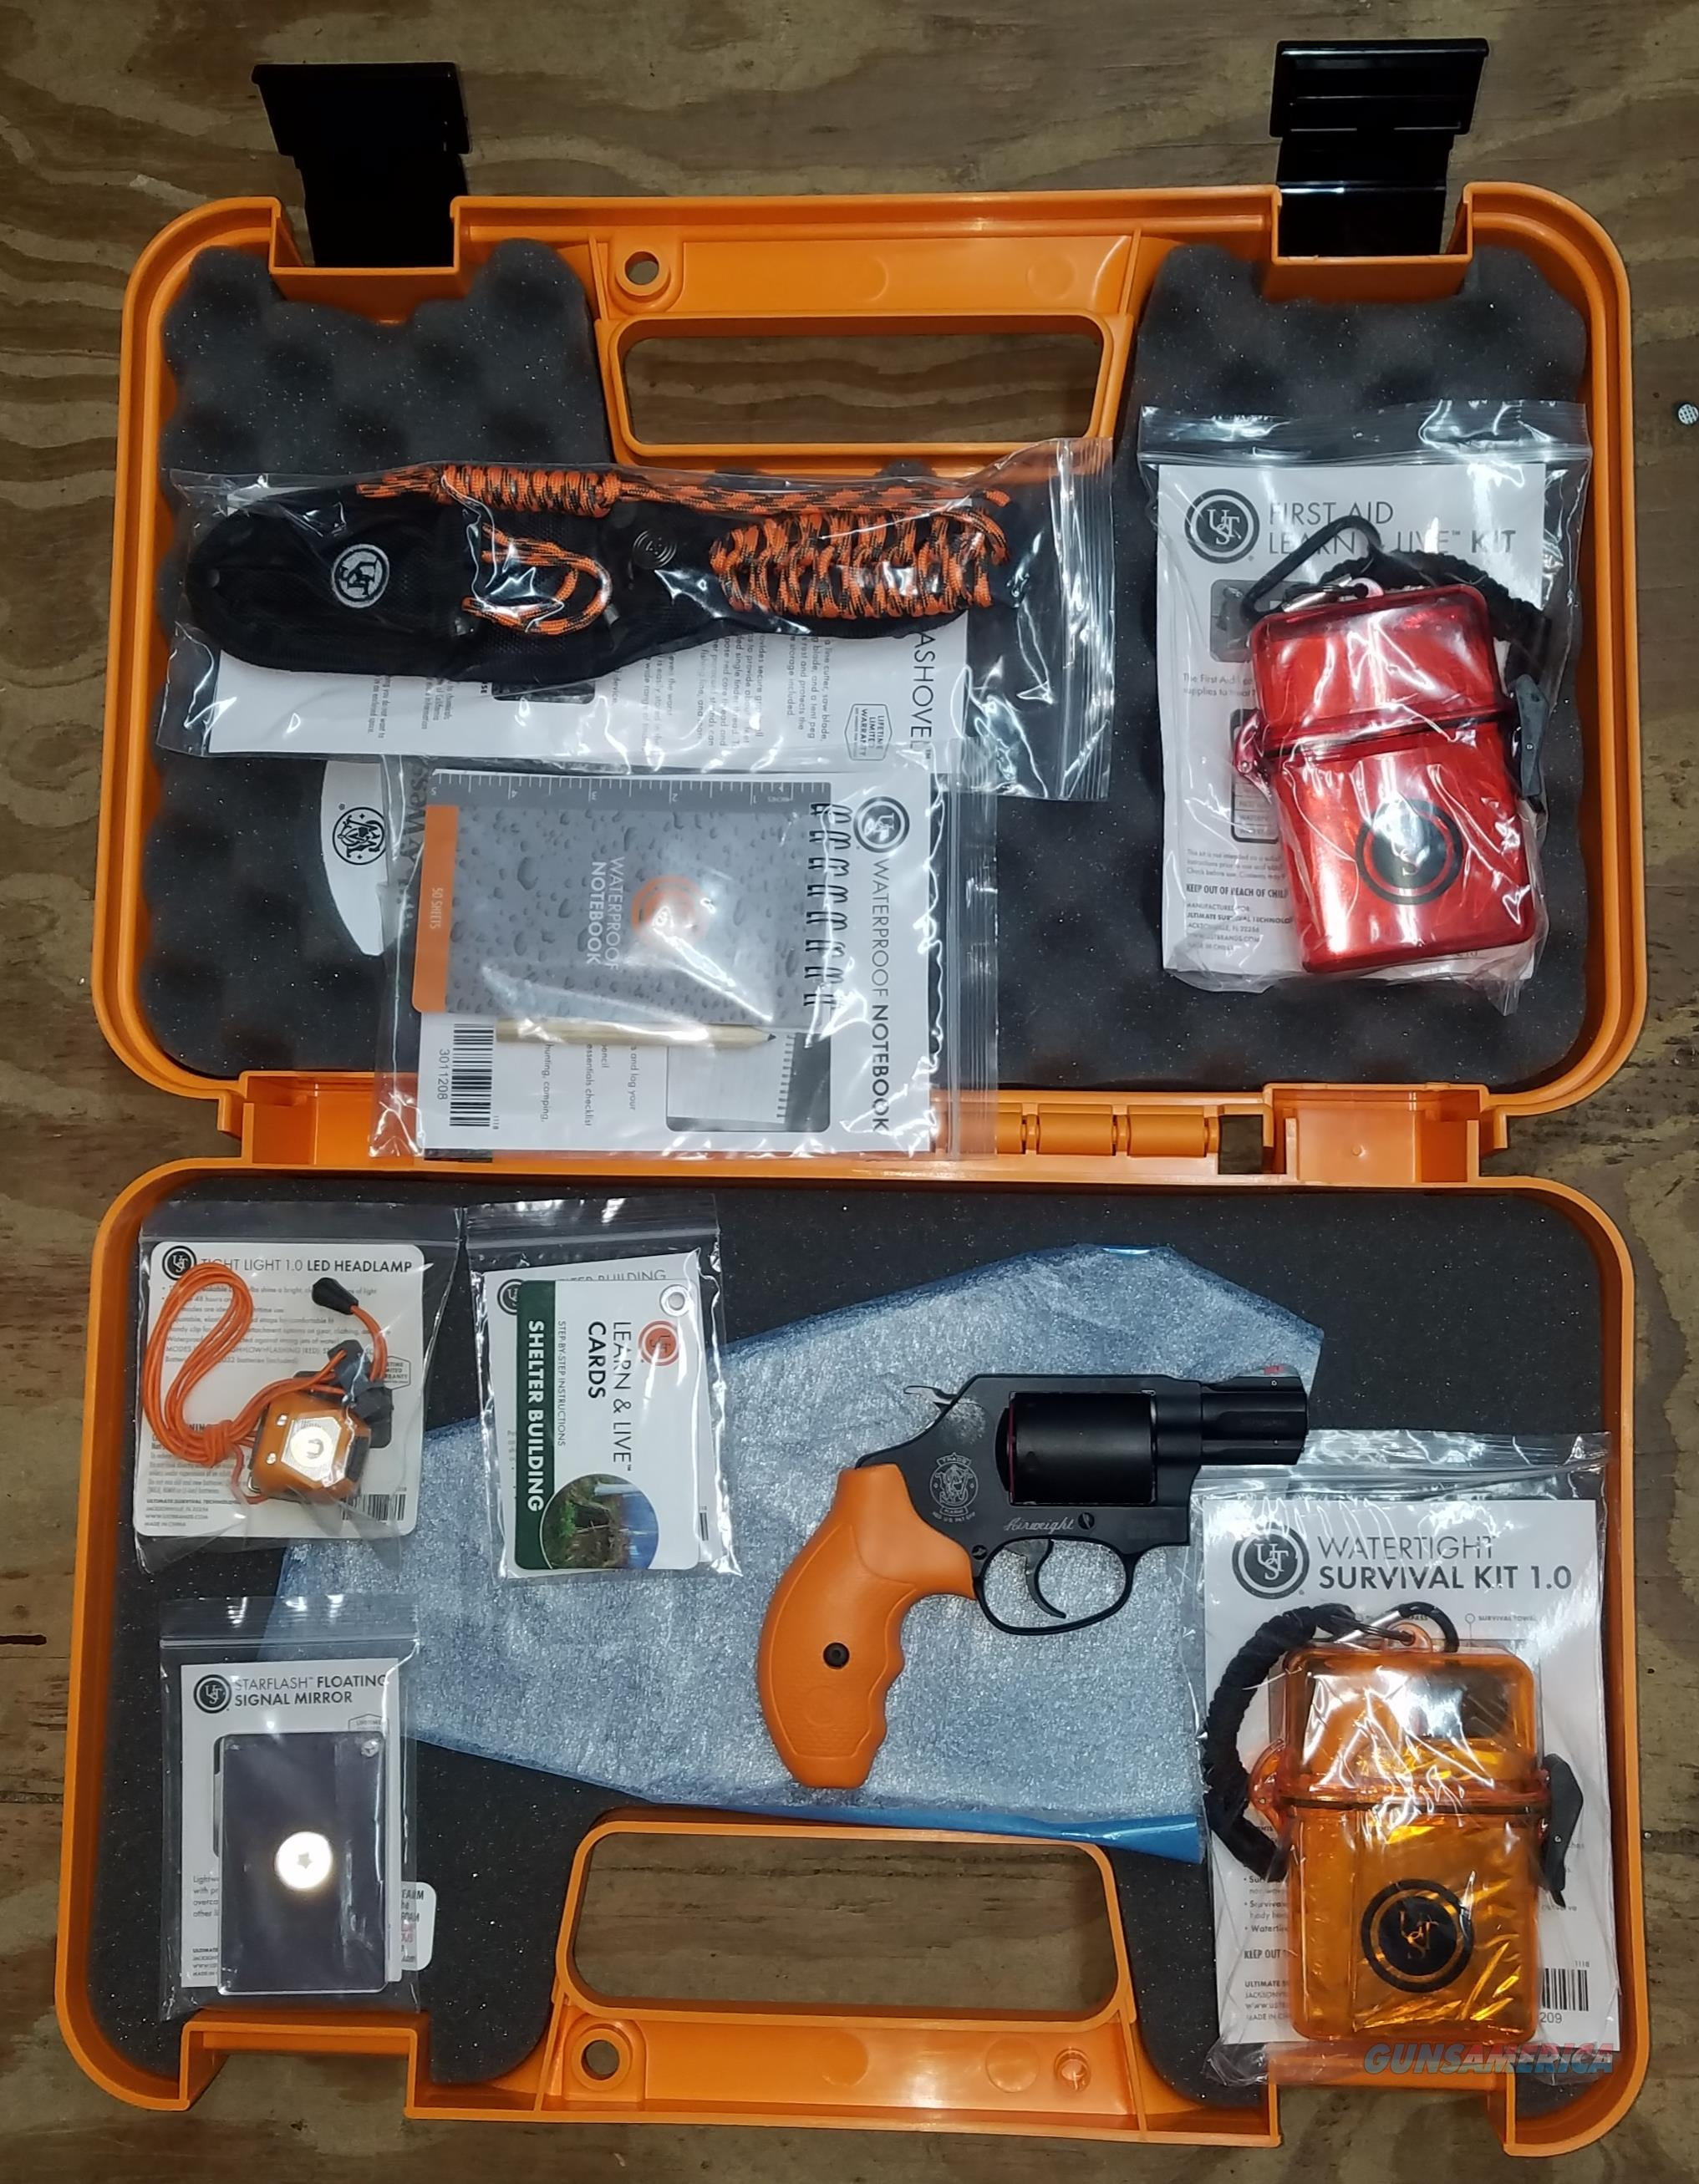 Smith & Wesson Survival Kit 357 magnum 12601  Guns > Pistols > Smith & Wesson Revolvers > Small Frame ( J )